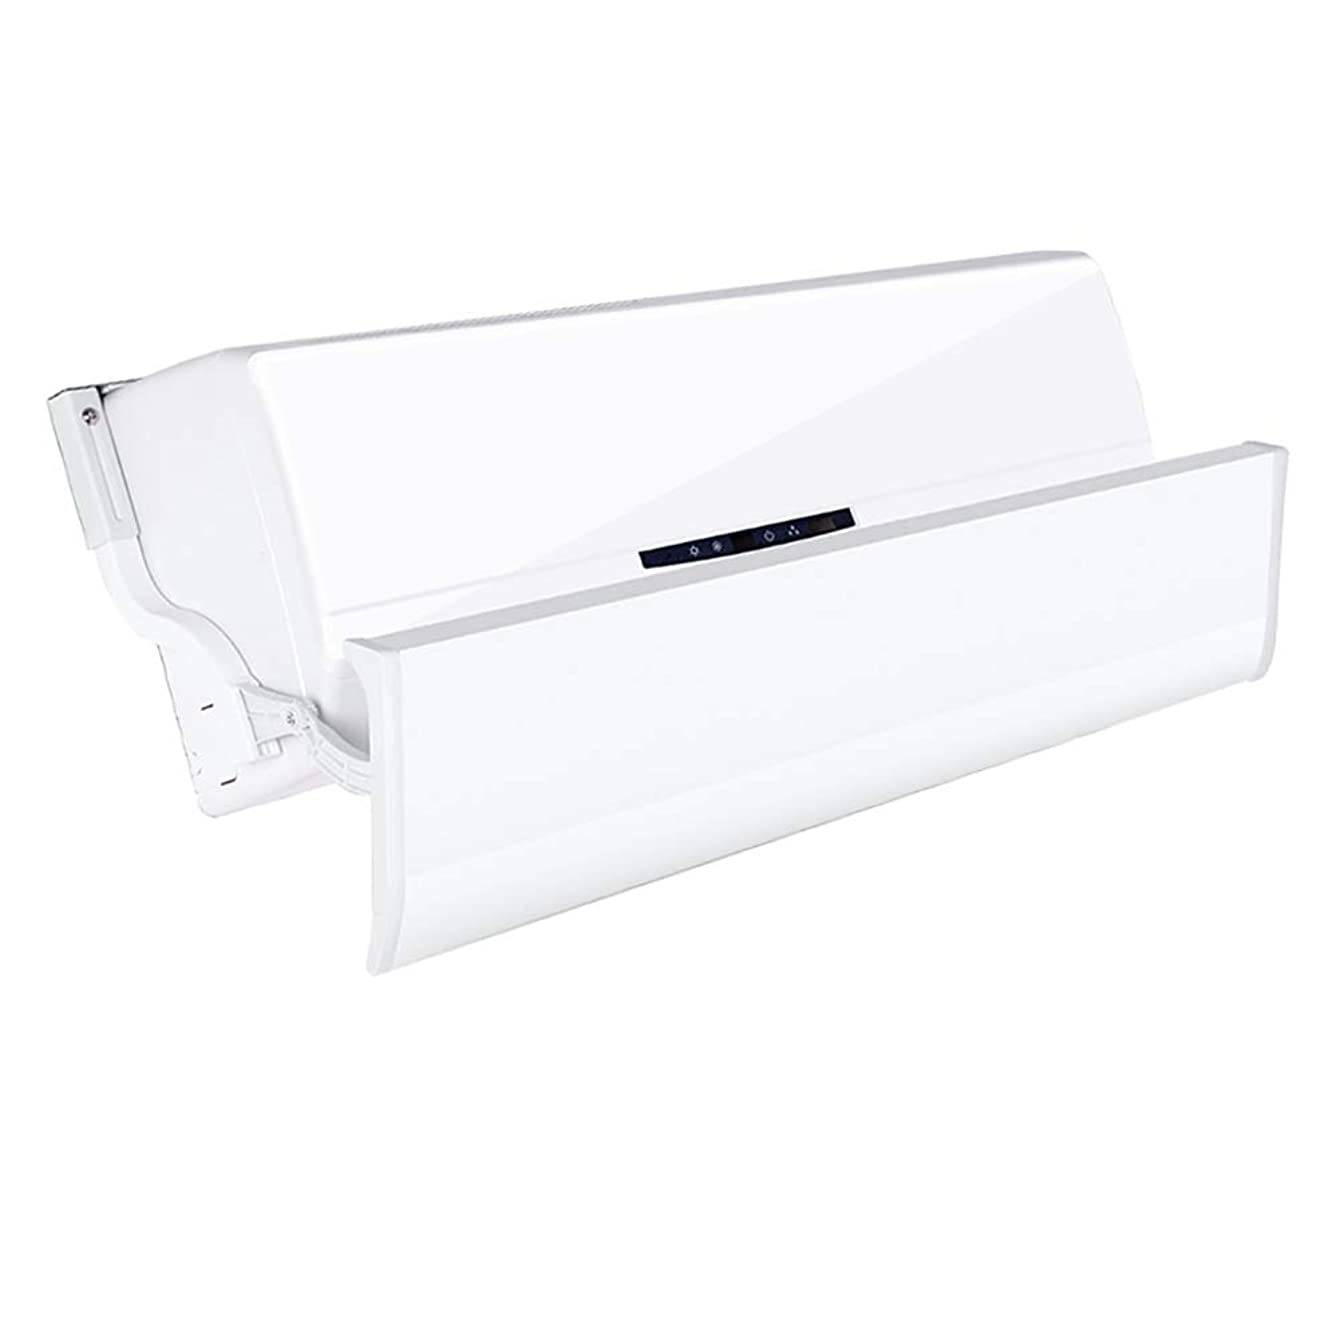 Central Air-Conditioning Wind Deflector, Anti Direct Blowing Plastic Steel Wind Shield Cold Wall-Mounted Air Guide Plate (Size : 80-86cm)